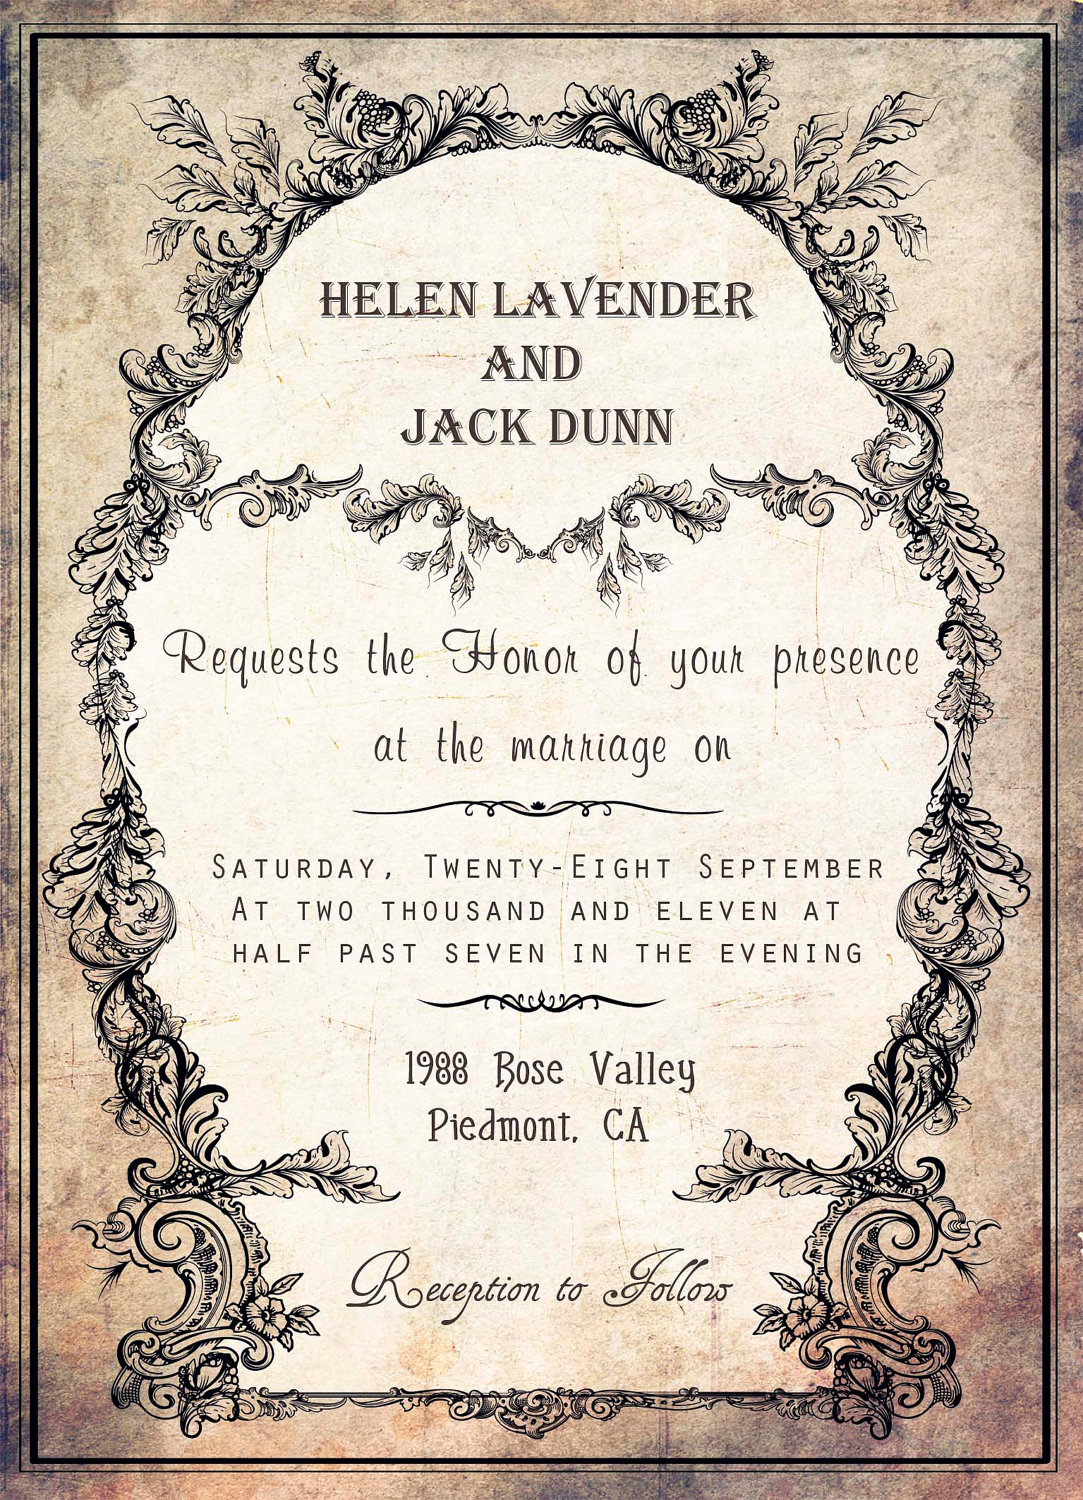 Wedding Invitation Template Peellandfmtk - Wedding invitation templates: wedding invitation template download